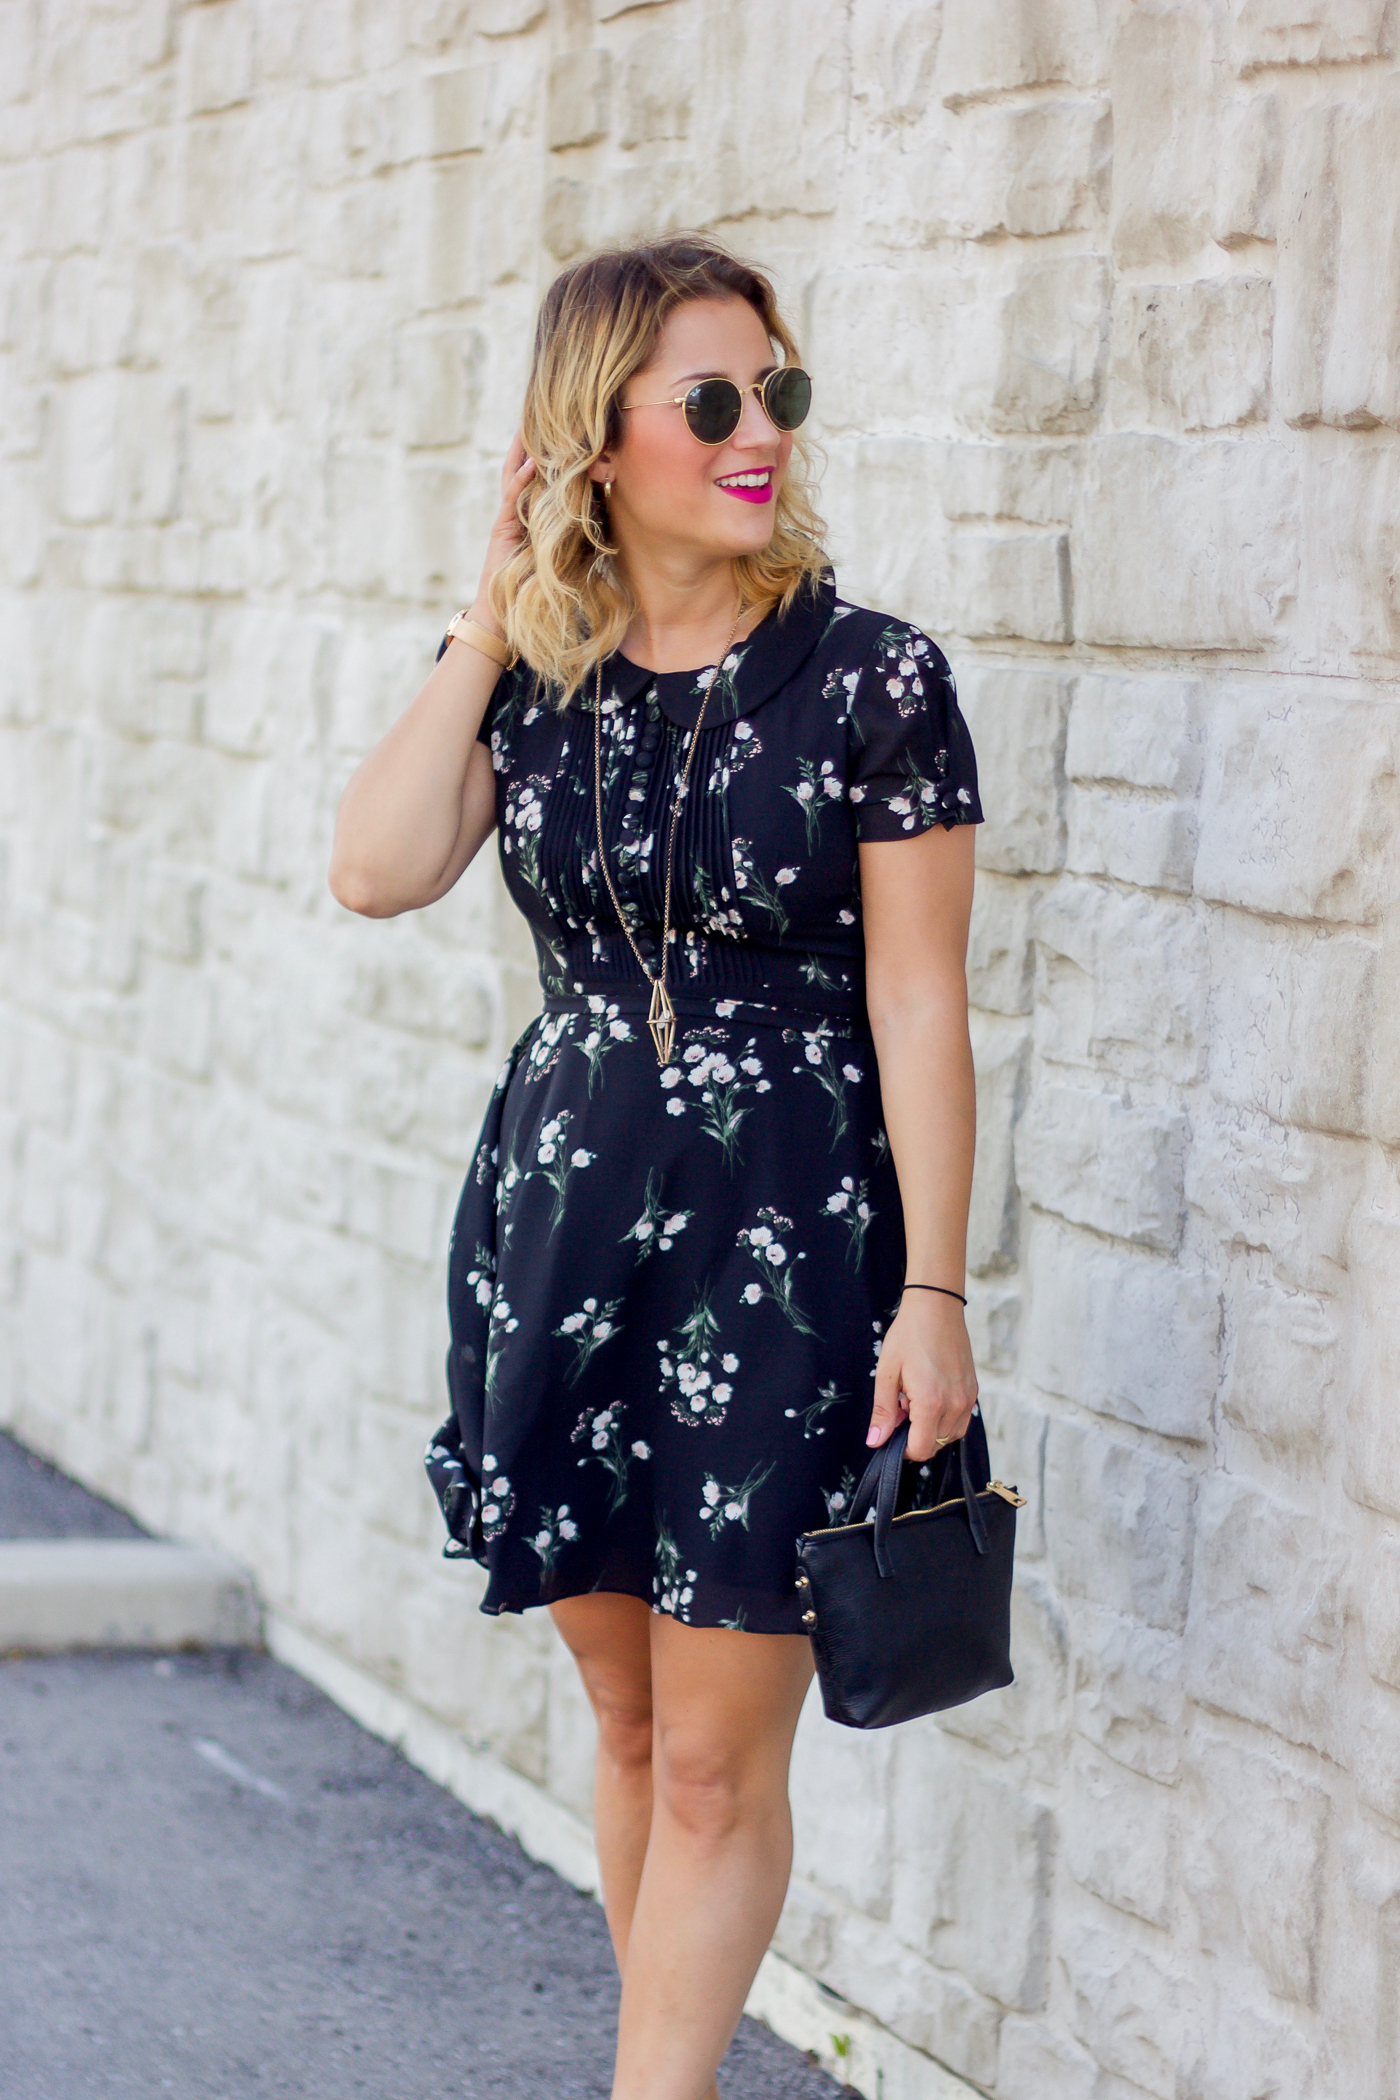 Toronto petite fashion and lifestyle blogger, Jackie at Something About That, wearing a Chicwish black floral print summer dress